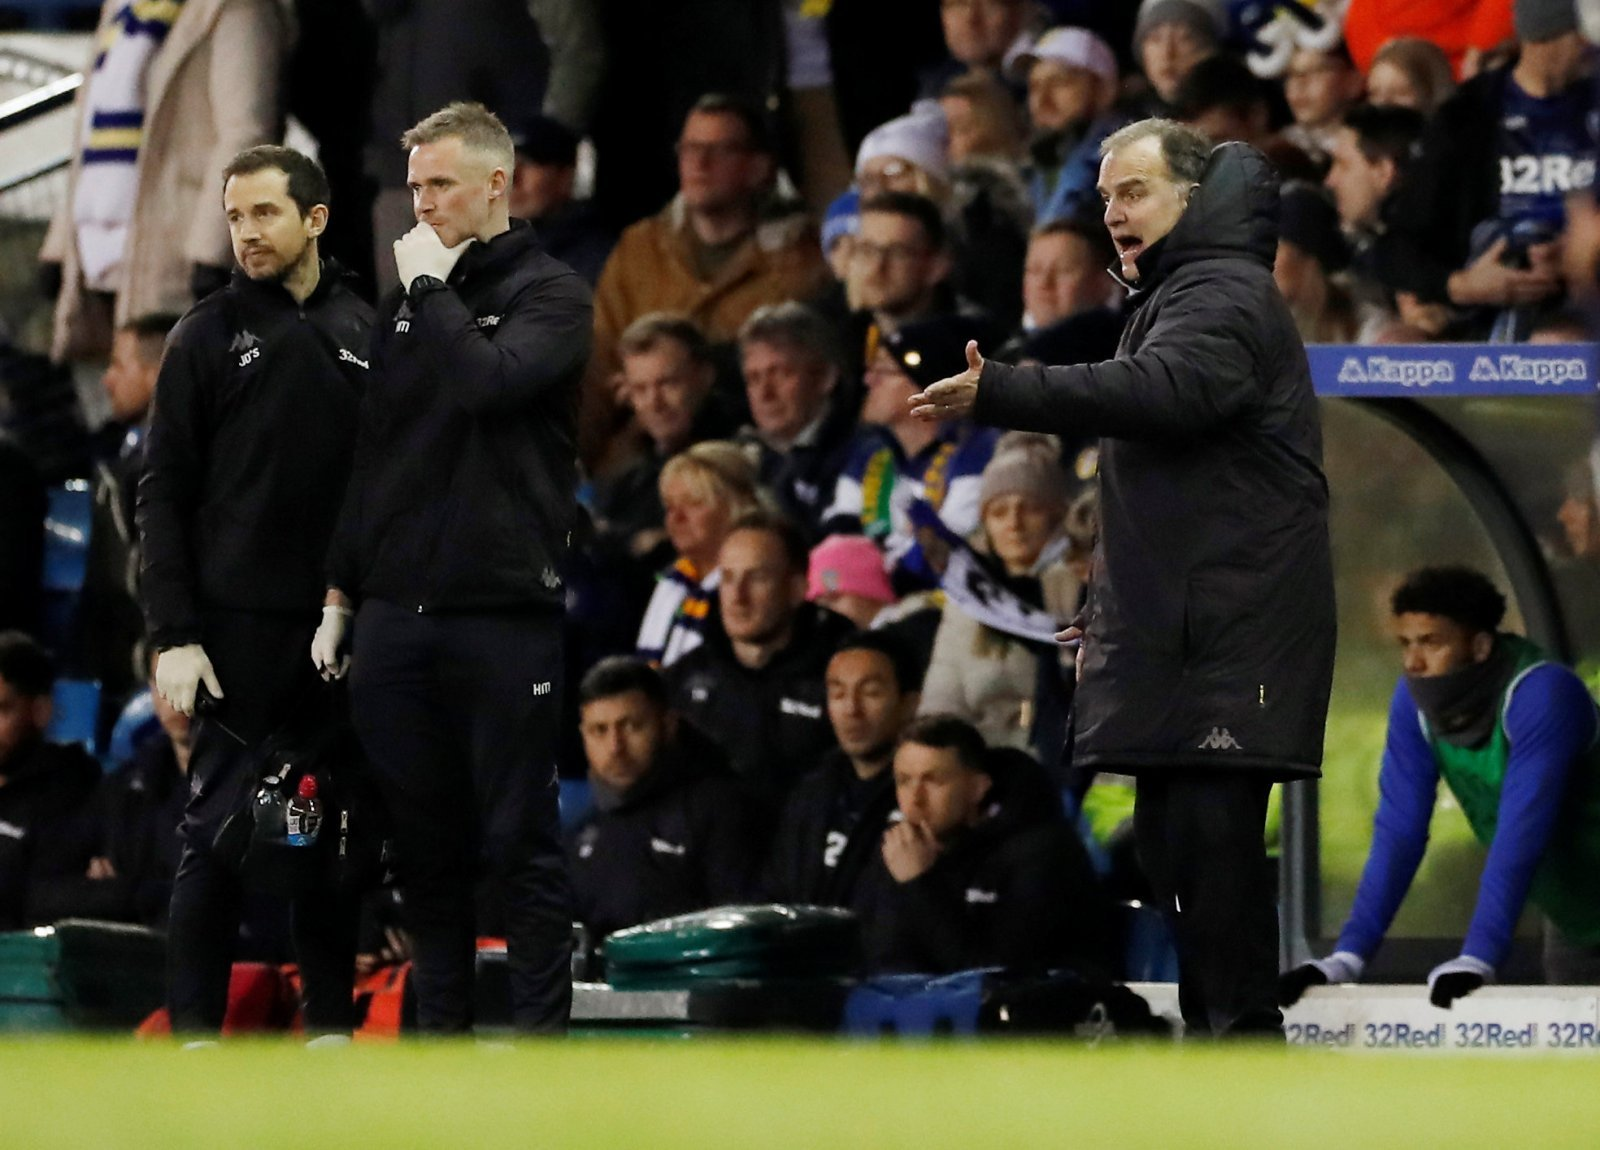 Opinion: Frank Lampard and Marcelo Bielsa's strongest critics of 'spygate' clutching at straws with damning criticism